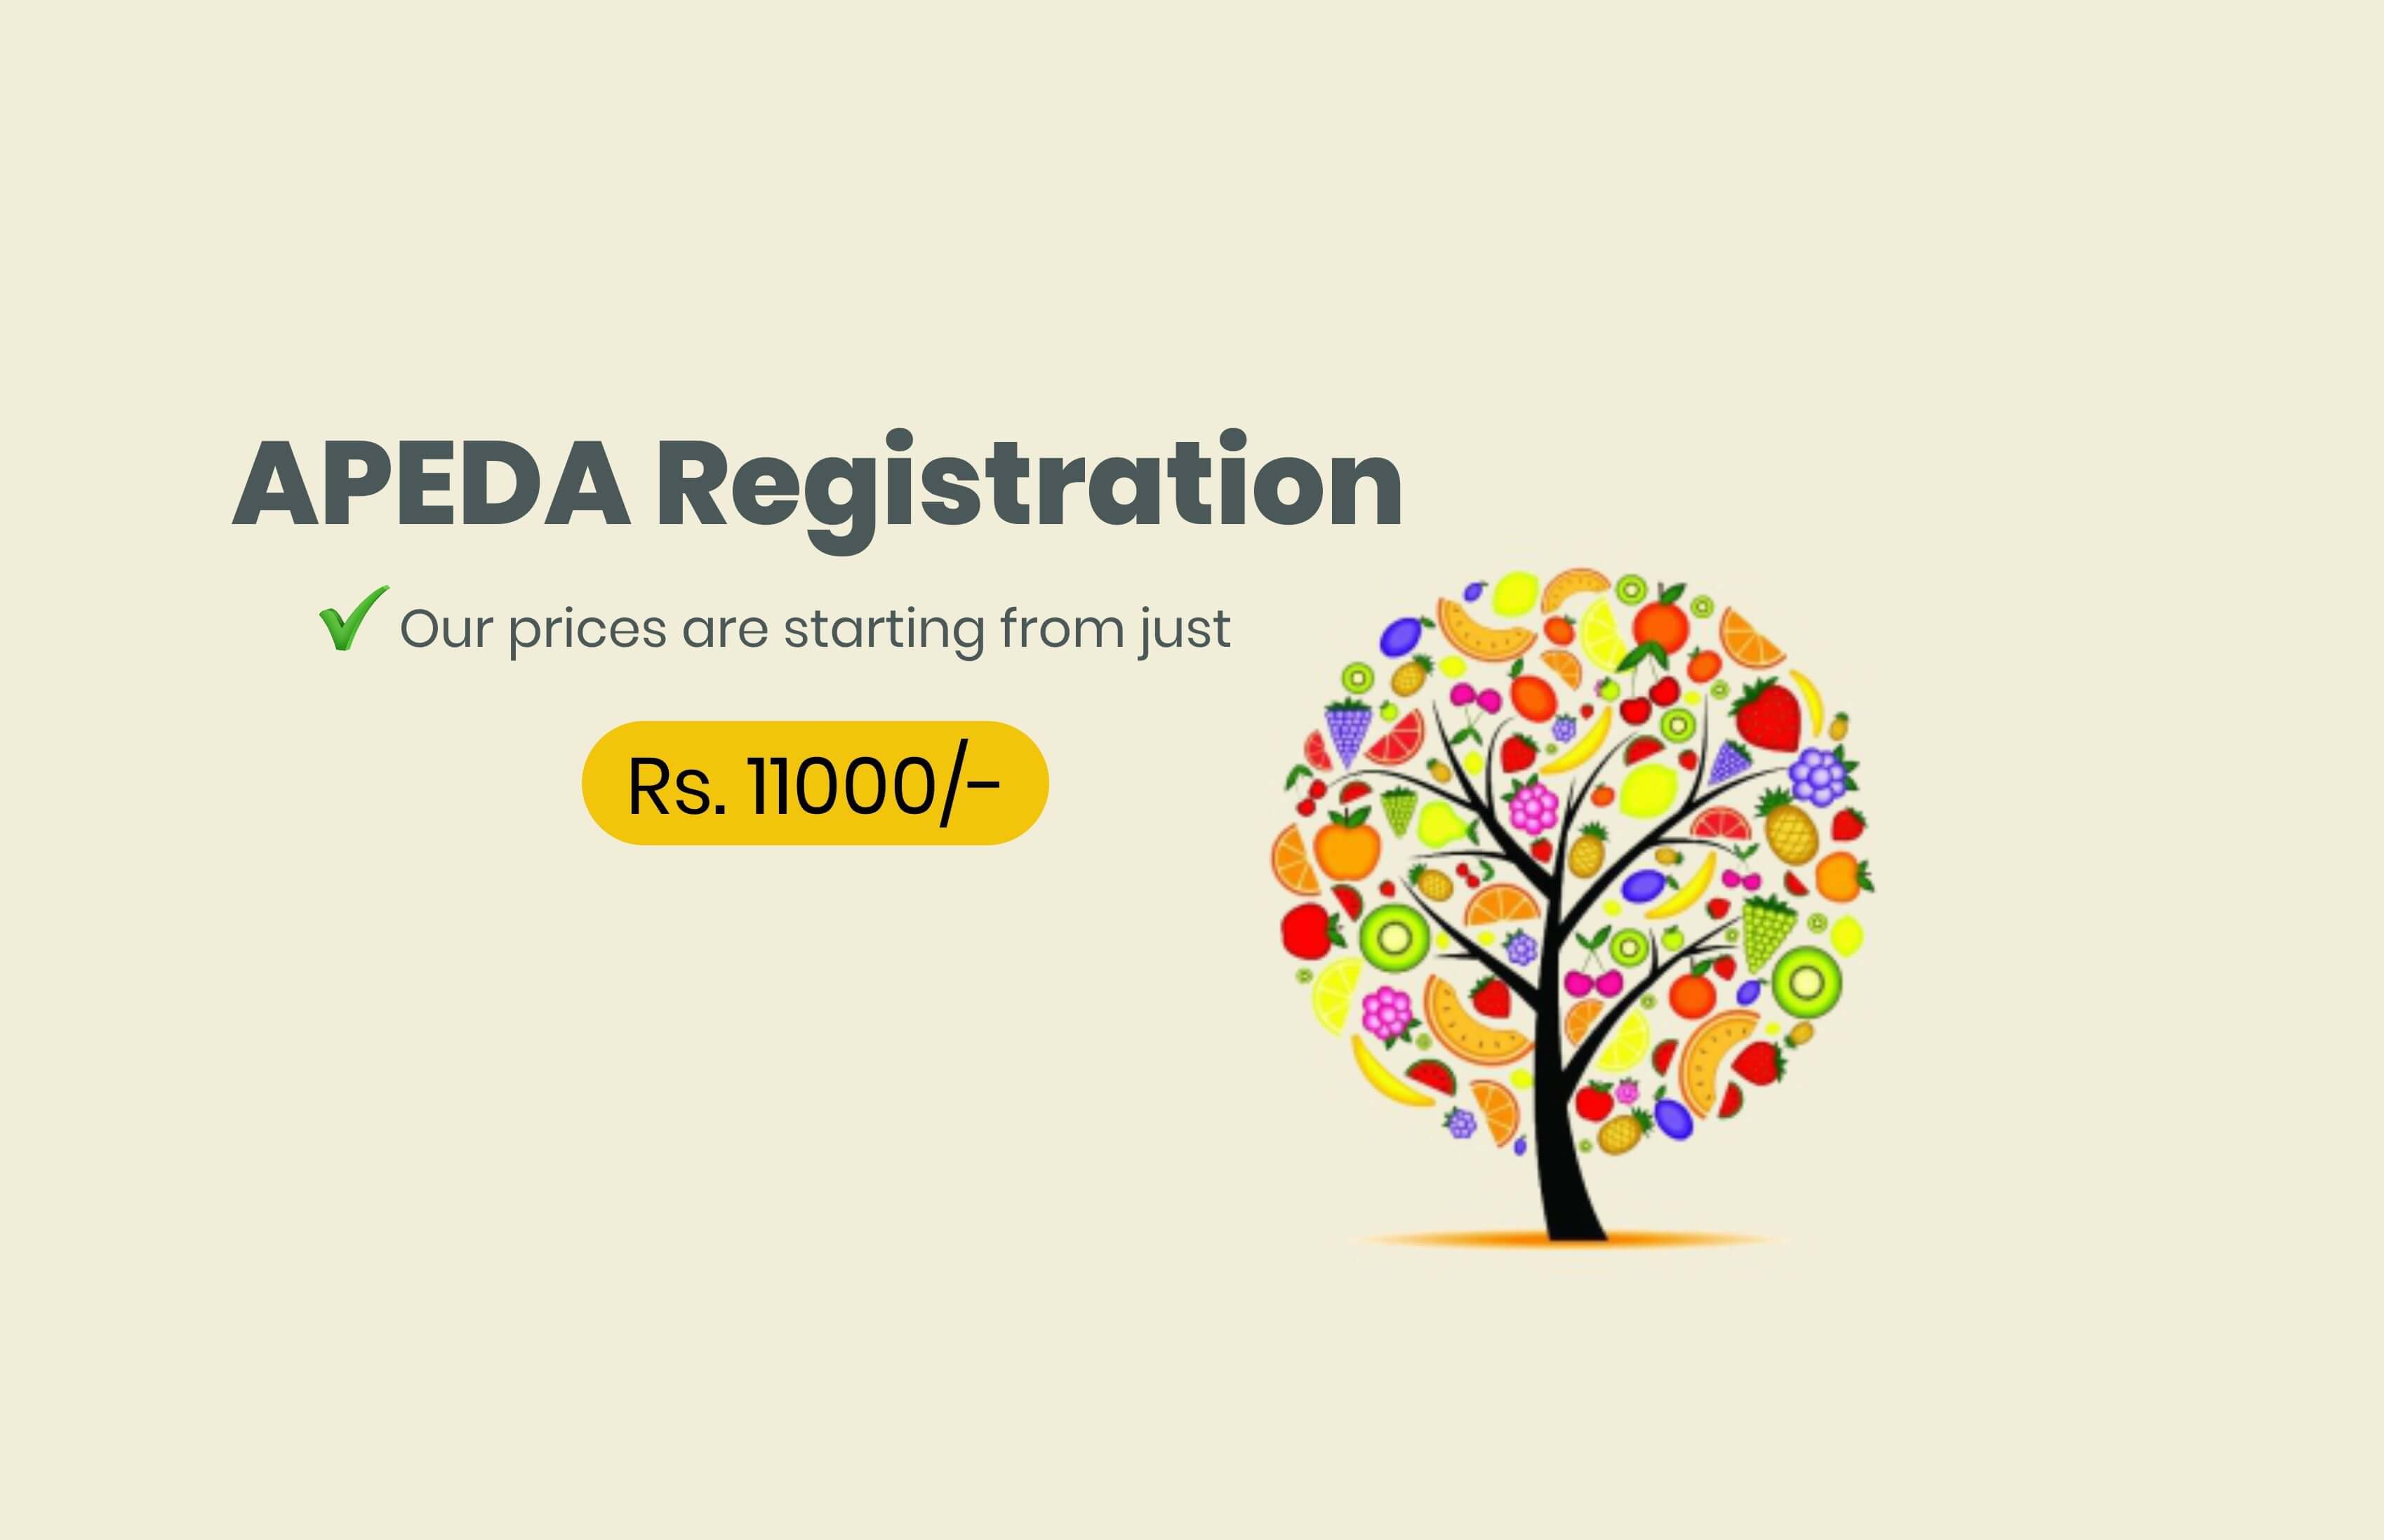 Apeda Registration india